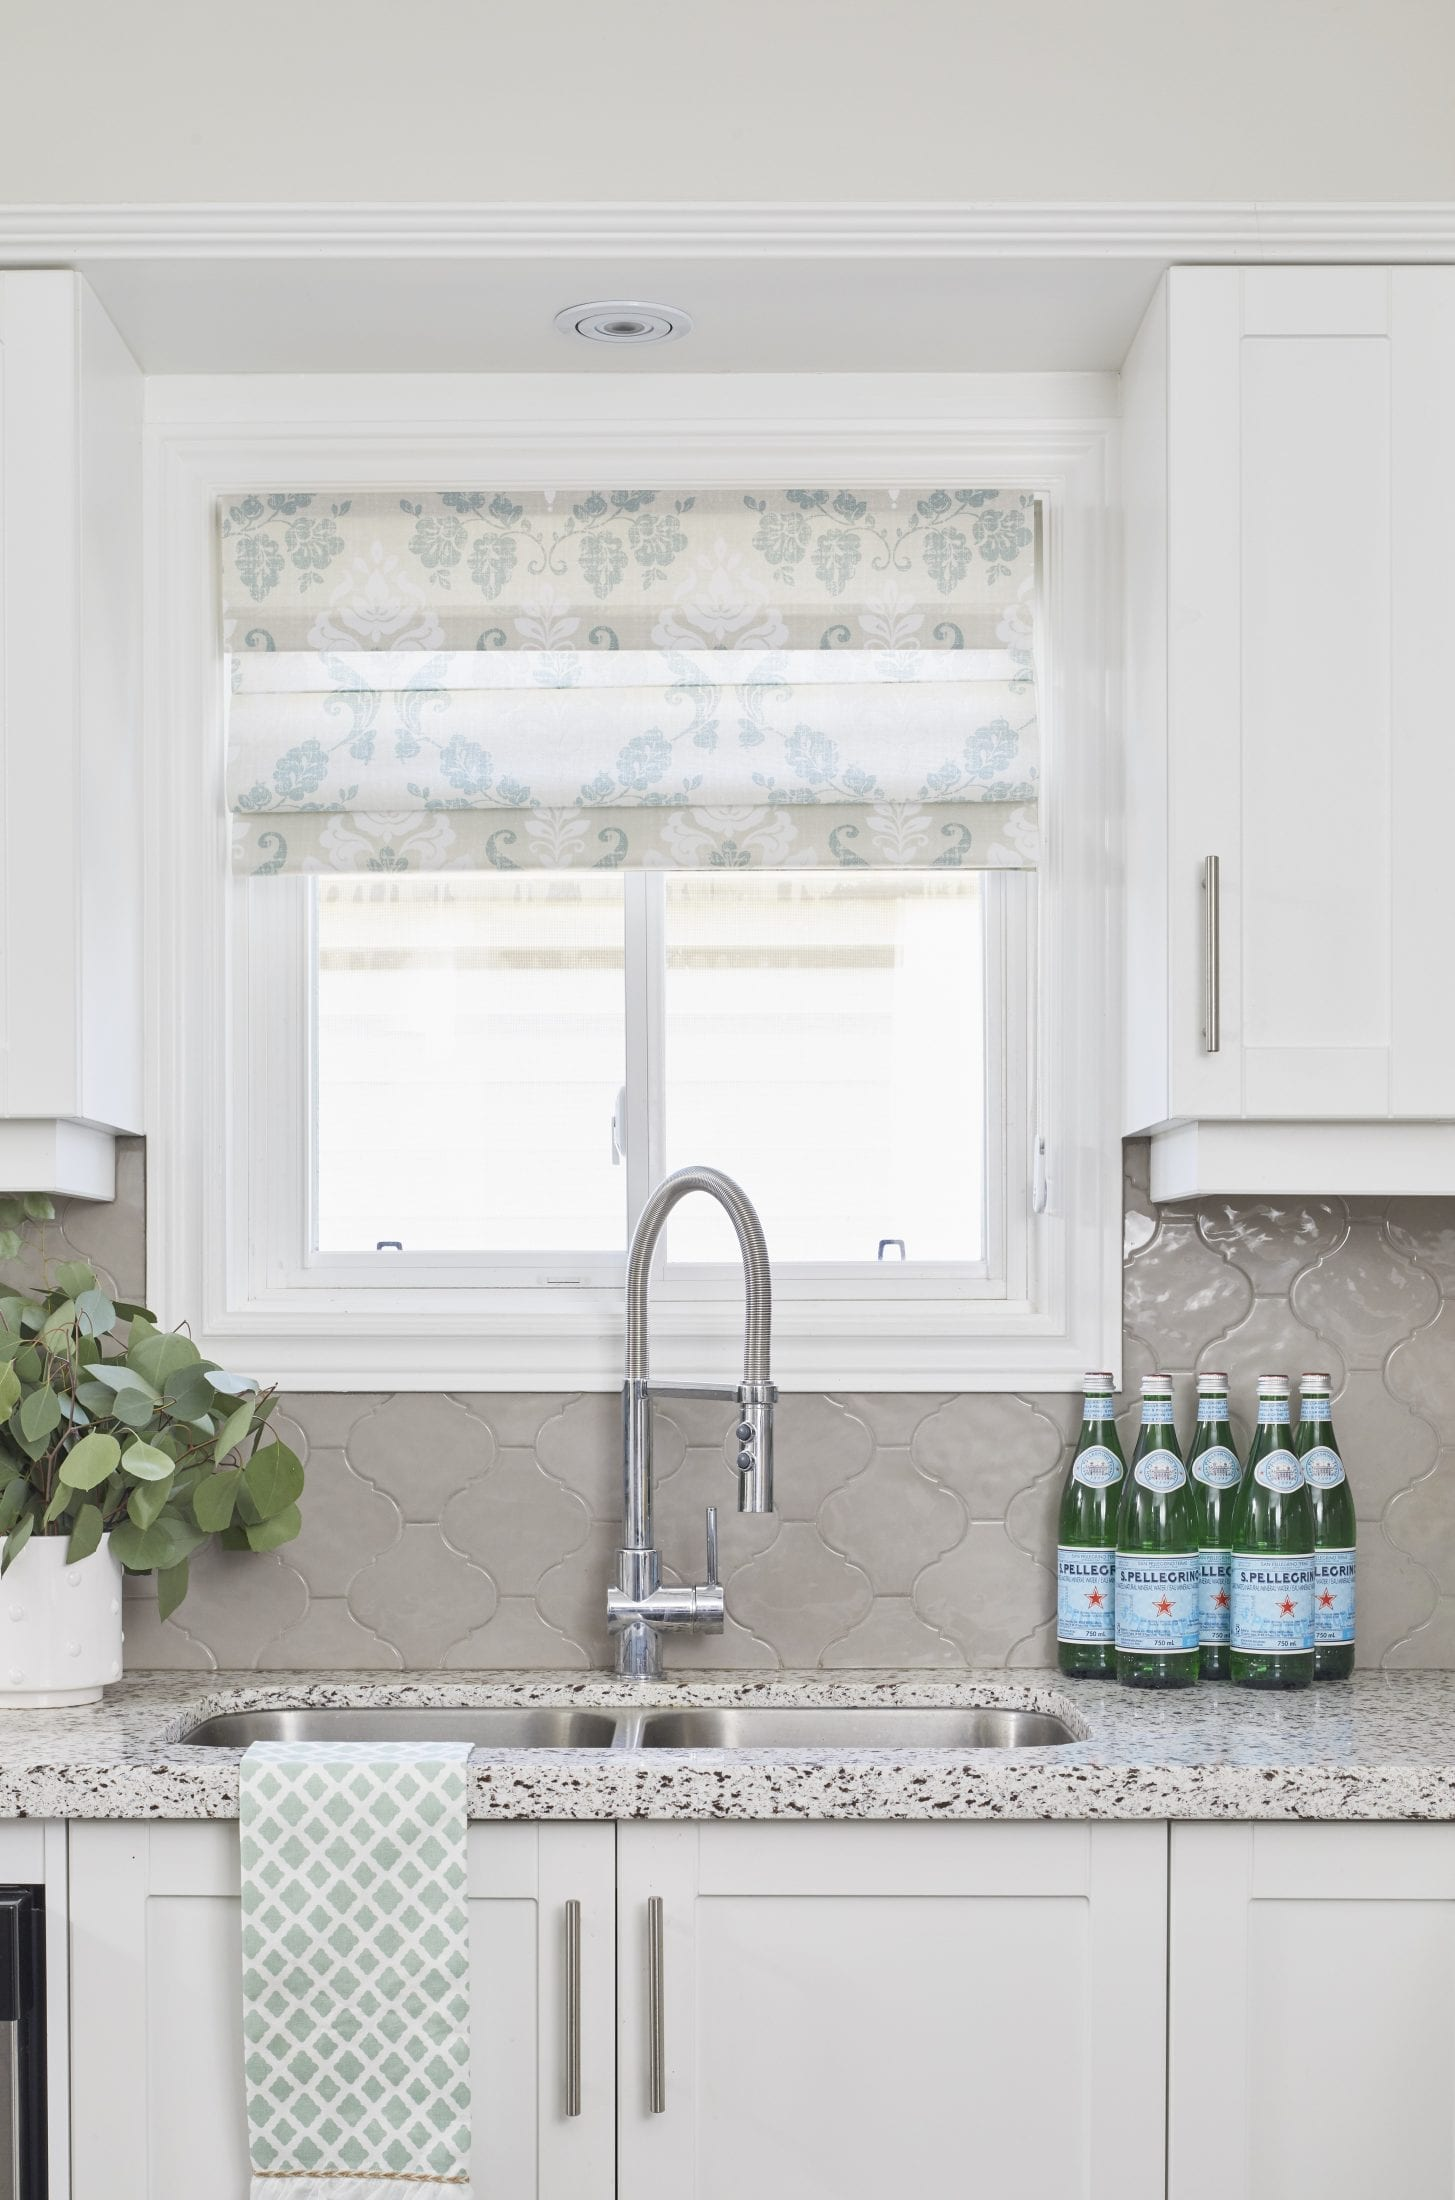 window Covering ideas roman shade for kitchen above sink